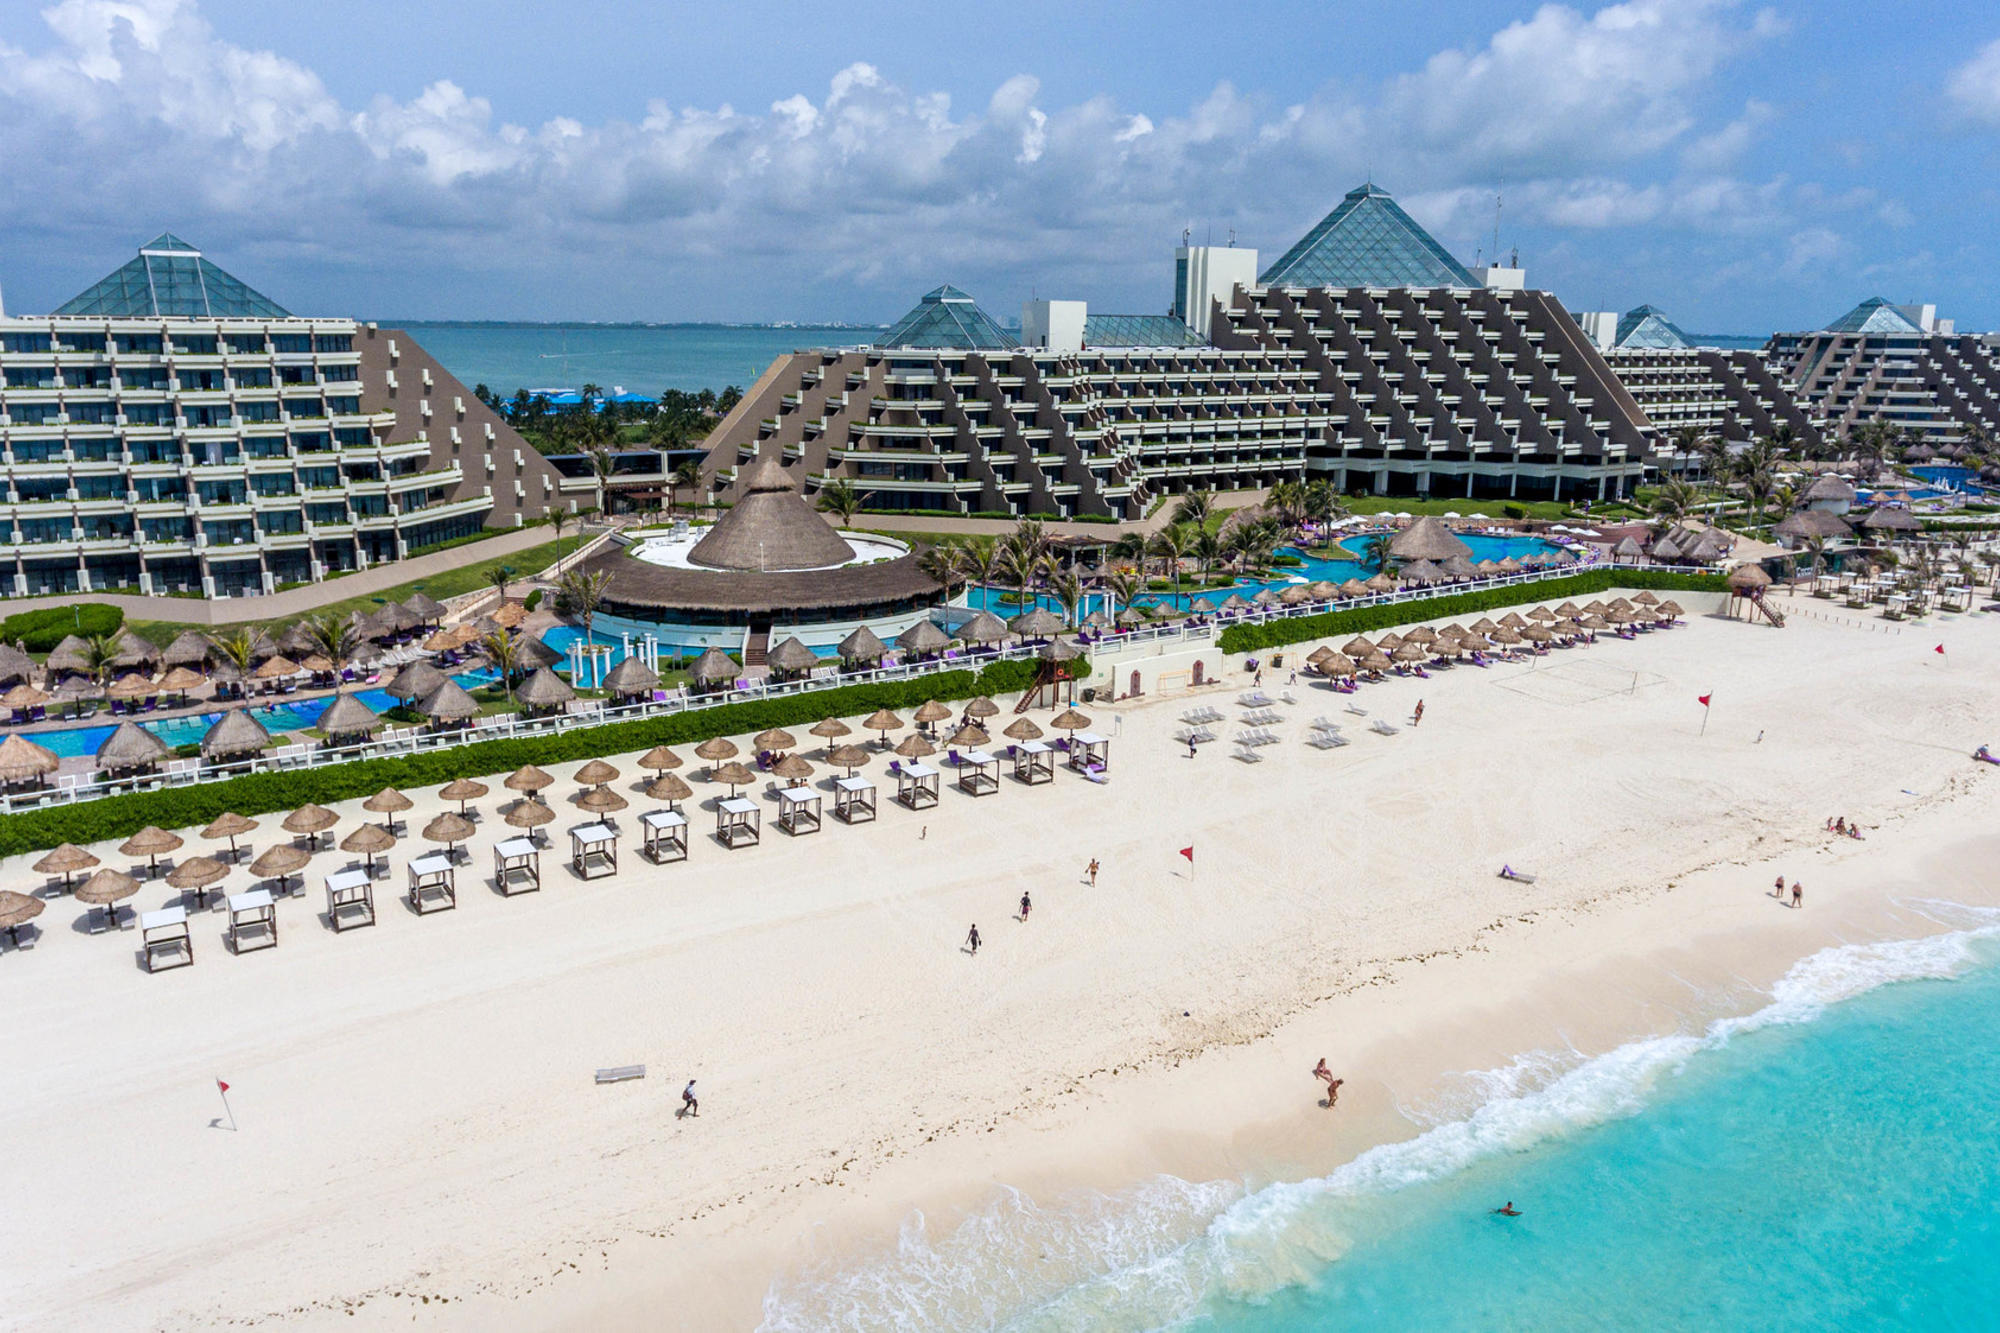 The pool and beach at Paradisus Cancun